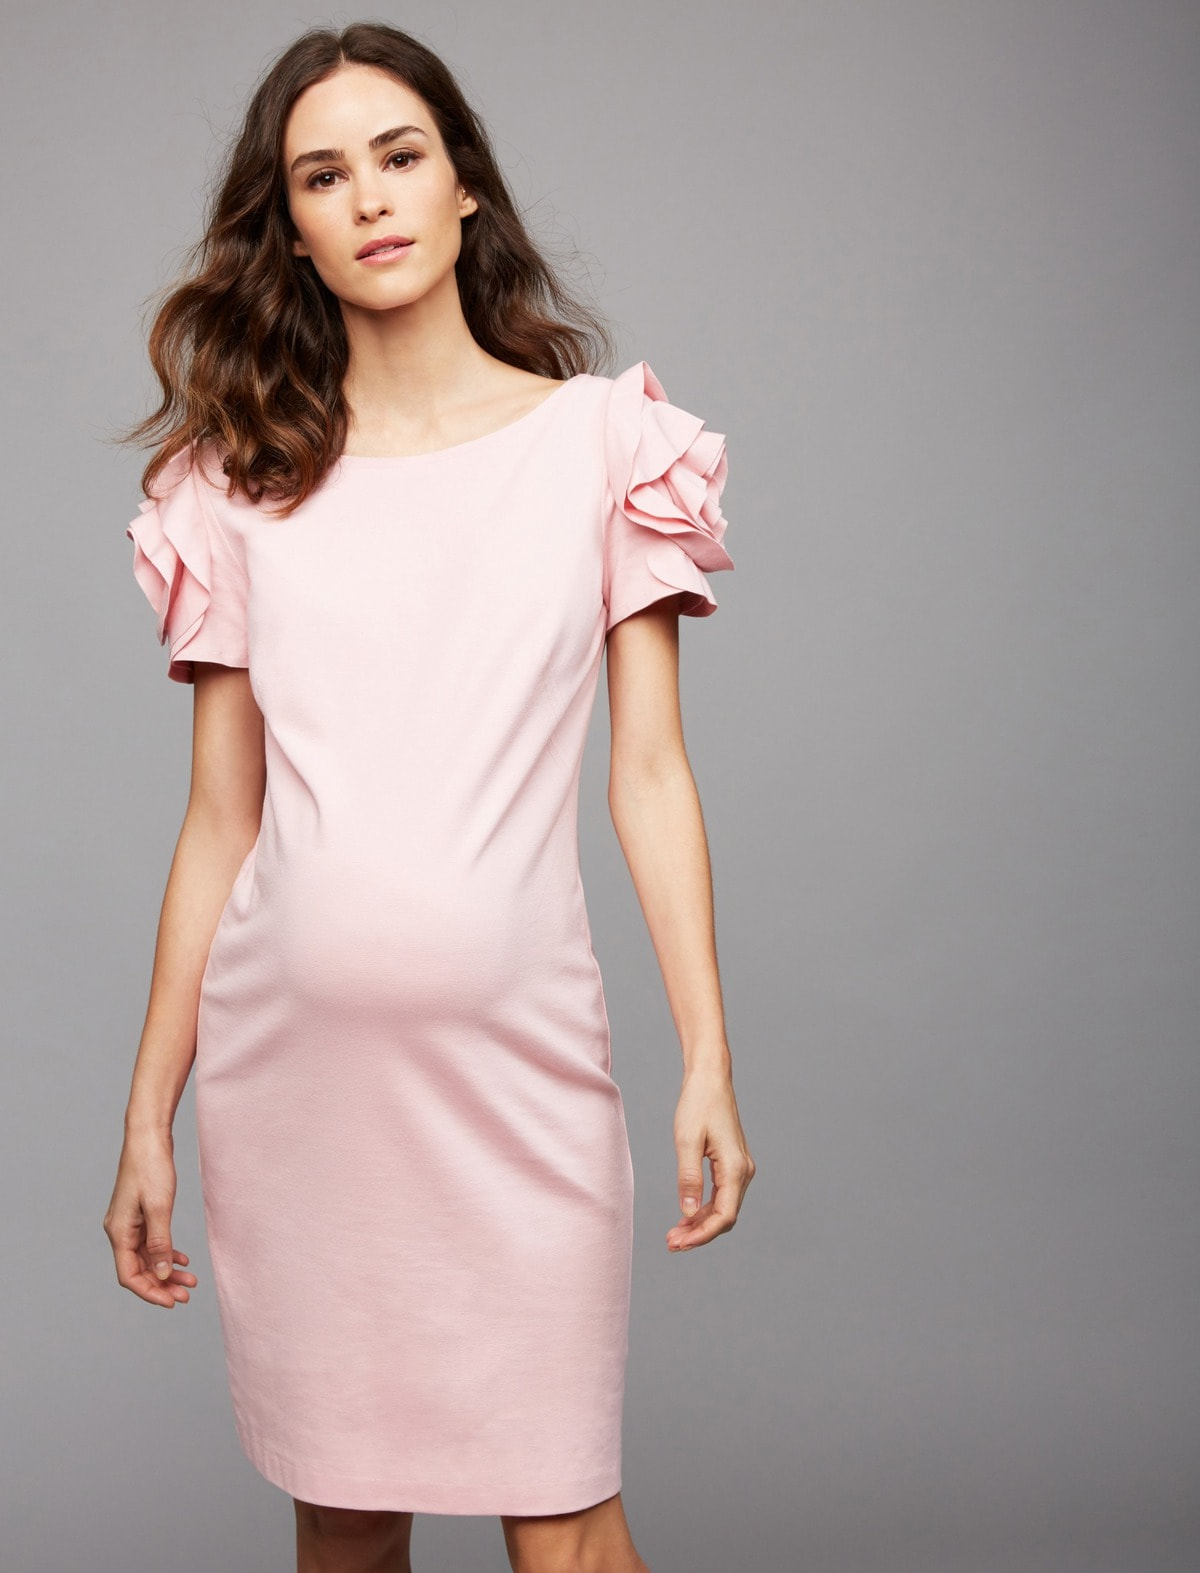 Maternity Dresses And Tops From A Pea In The Pod Maternity